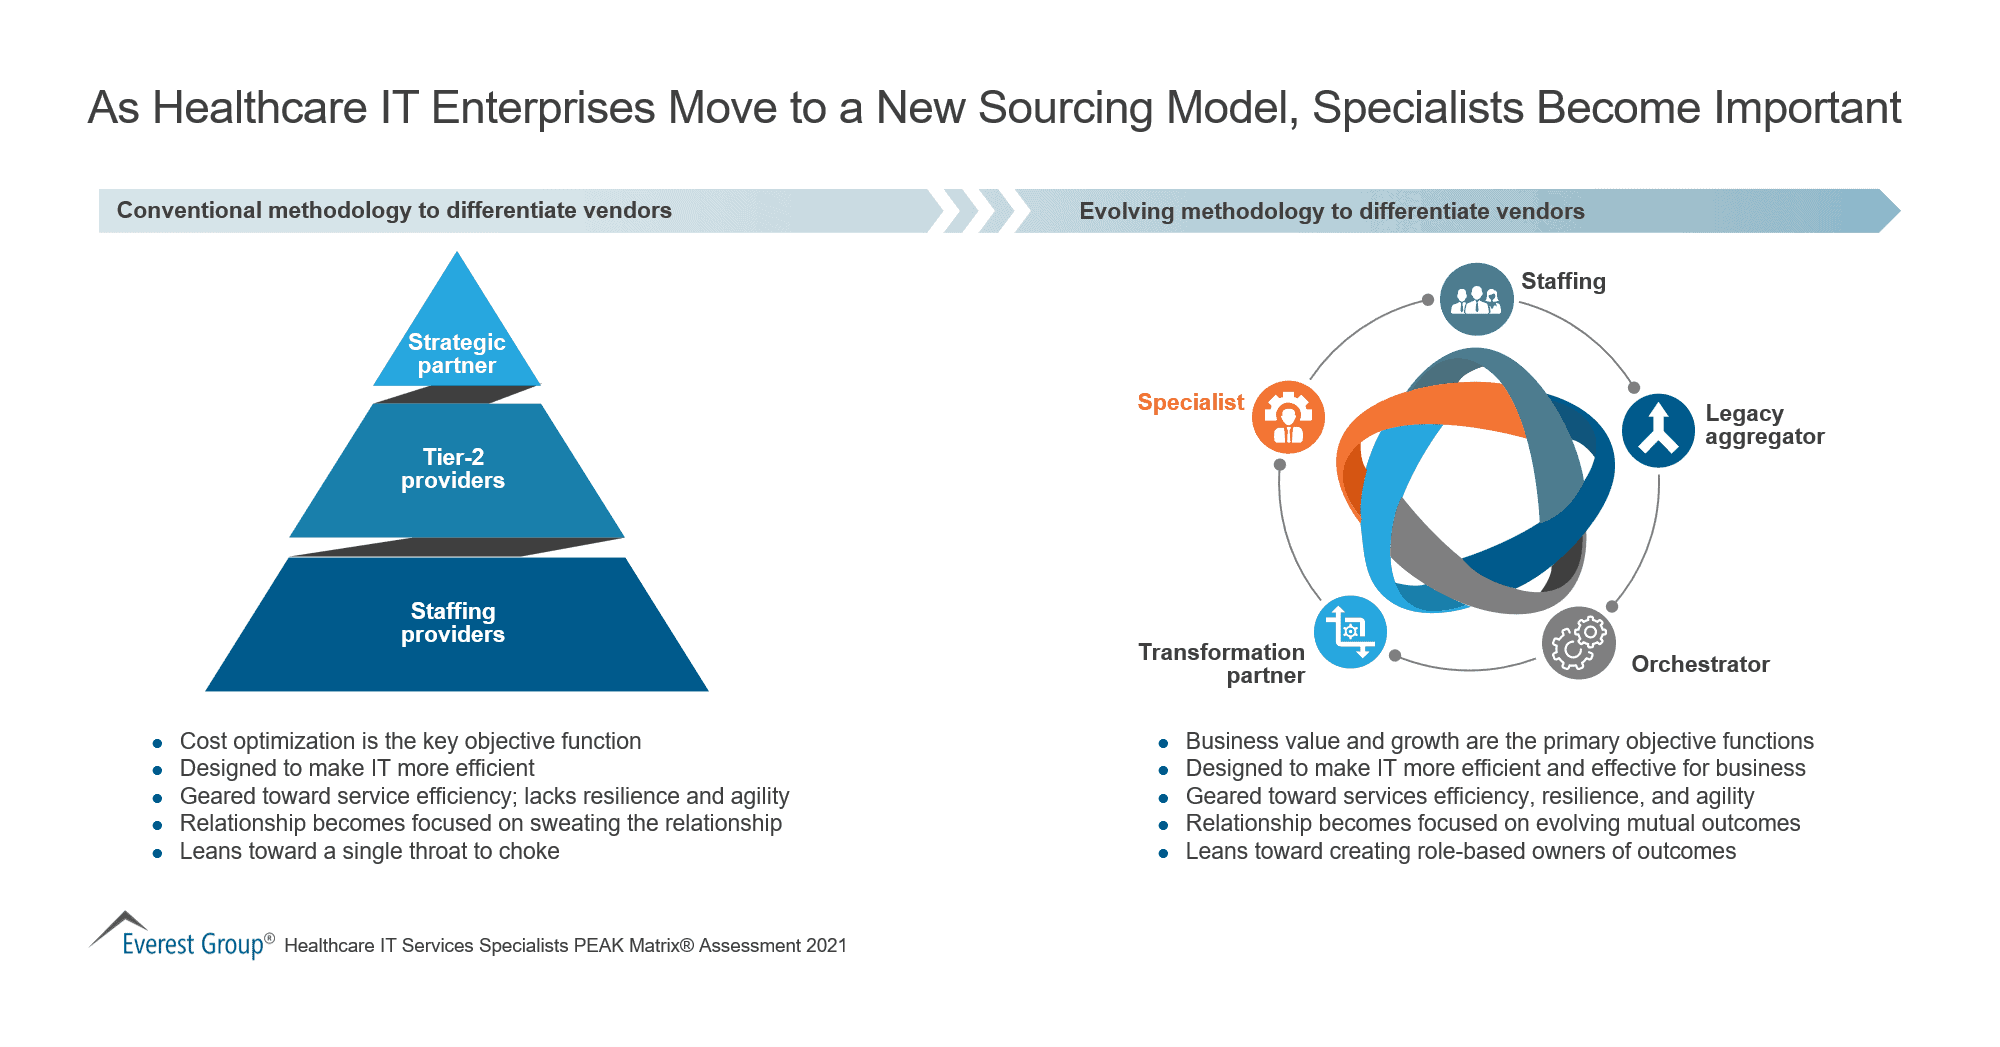 As Healthcare IT Enterprises Move to a New Sourcing Model, Specialists Become Important